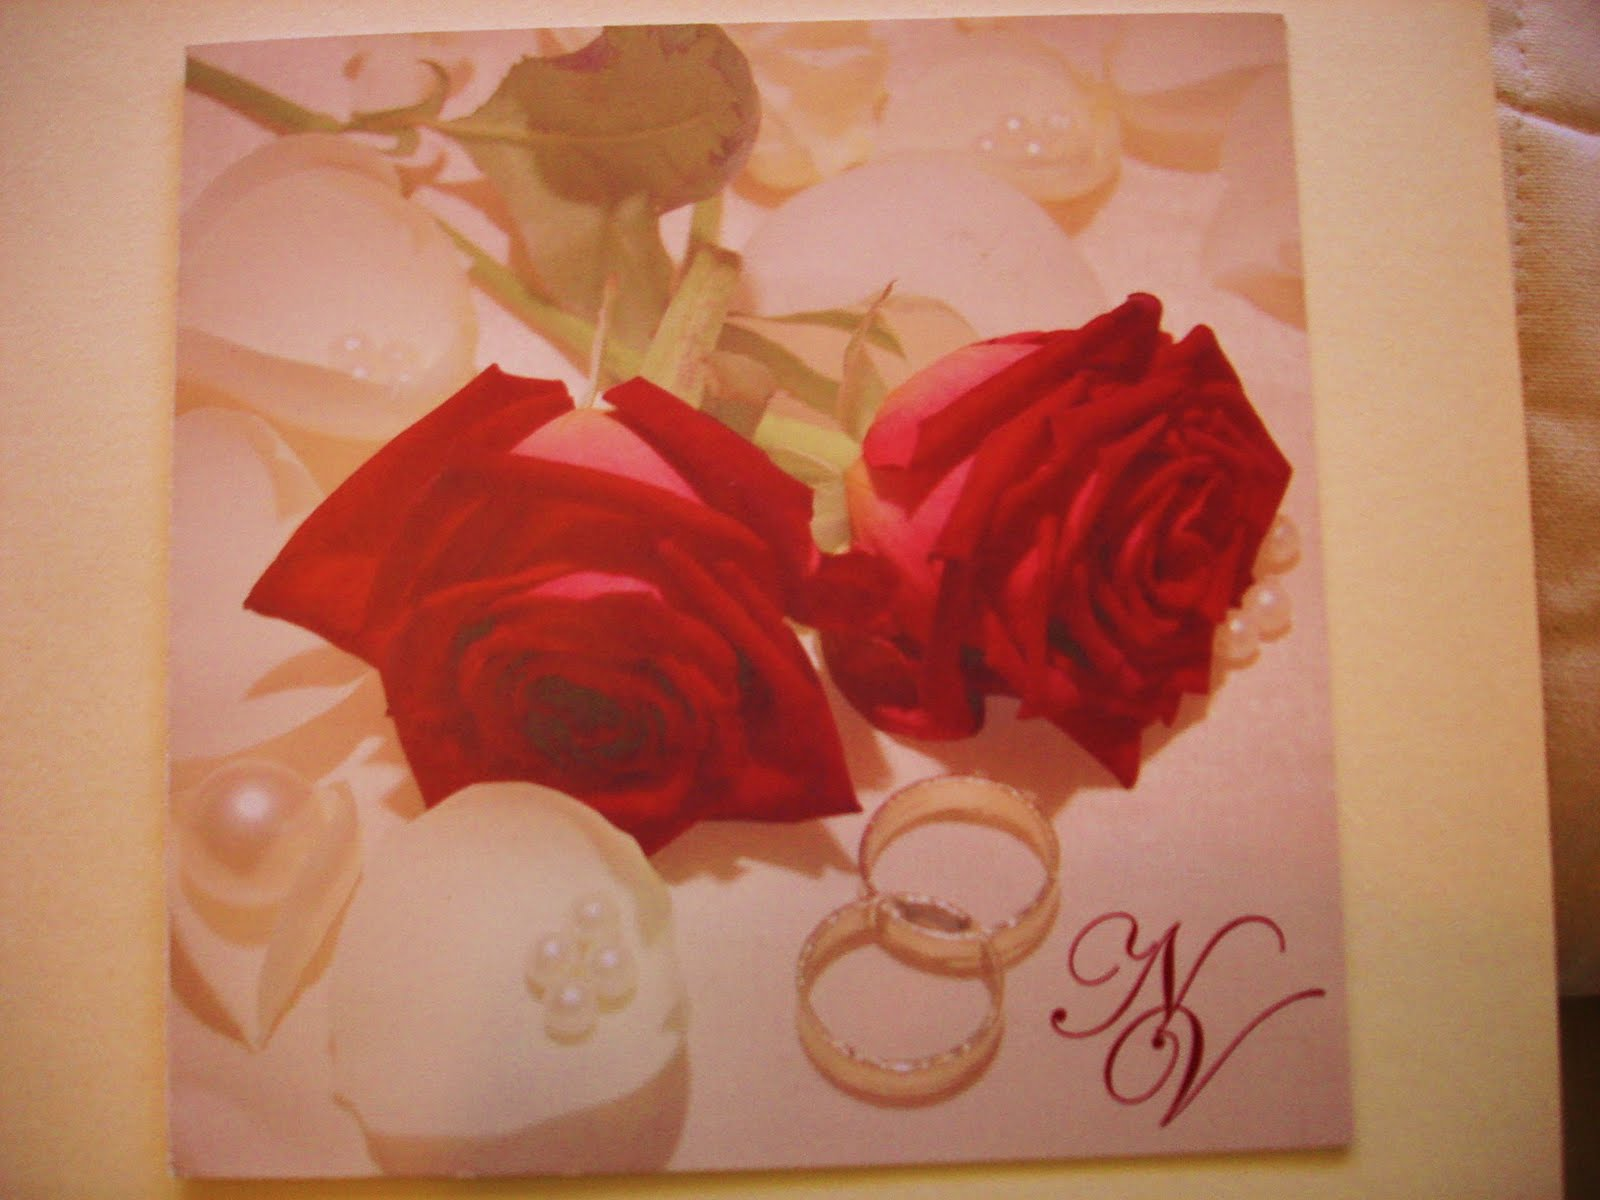 Follow My Bliss: An Invitation to a Southern Italian Wedding Part 1